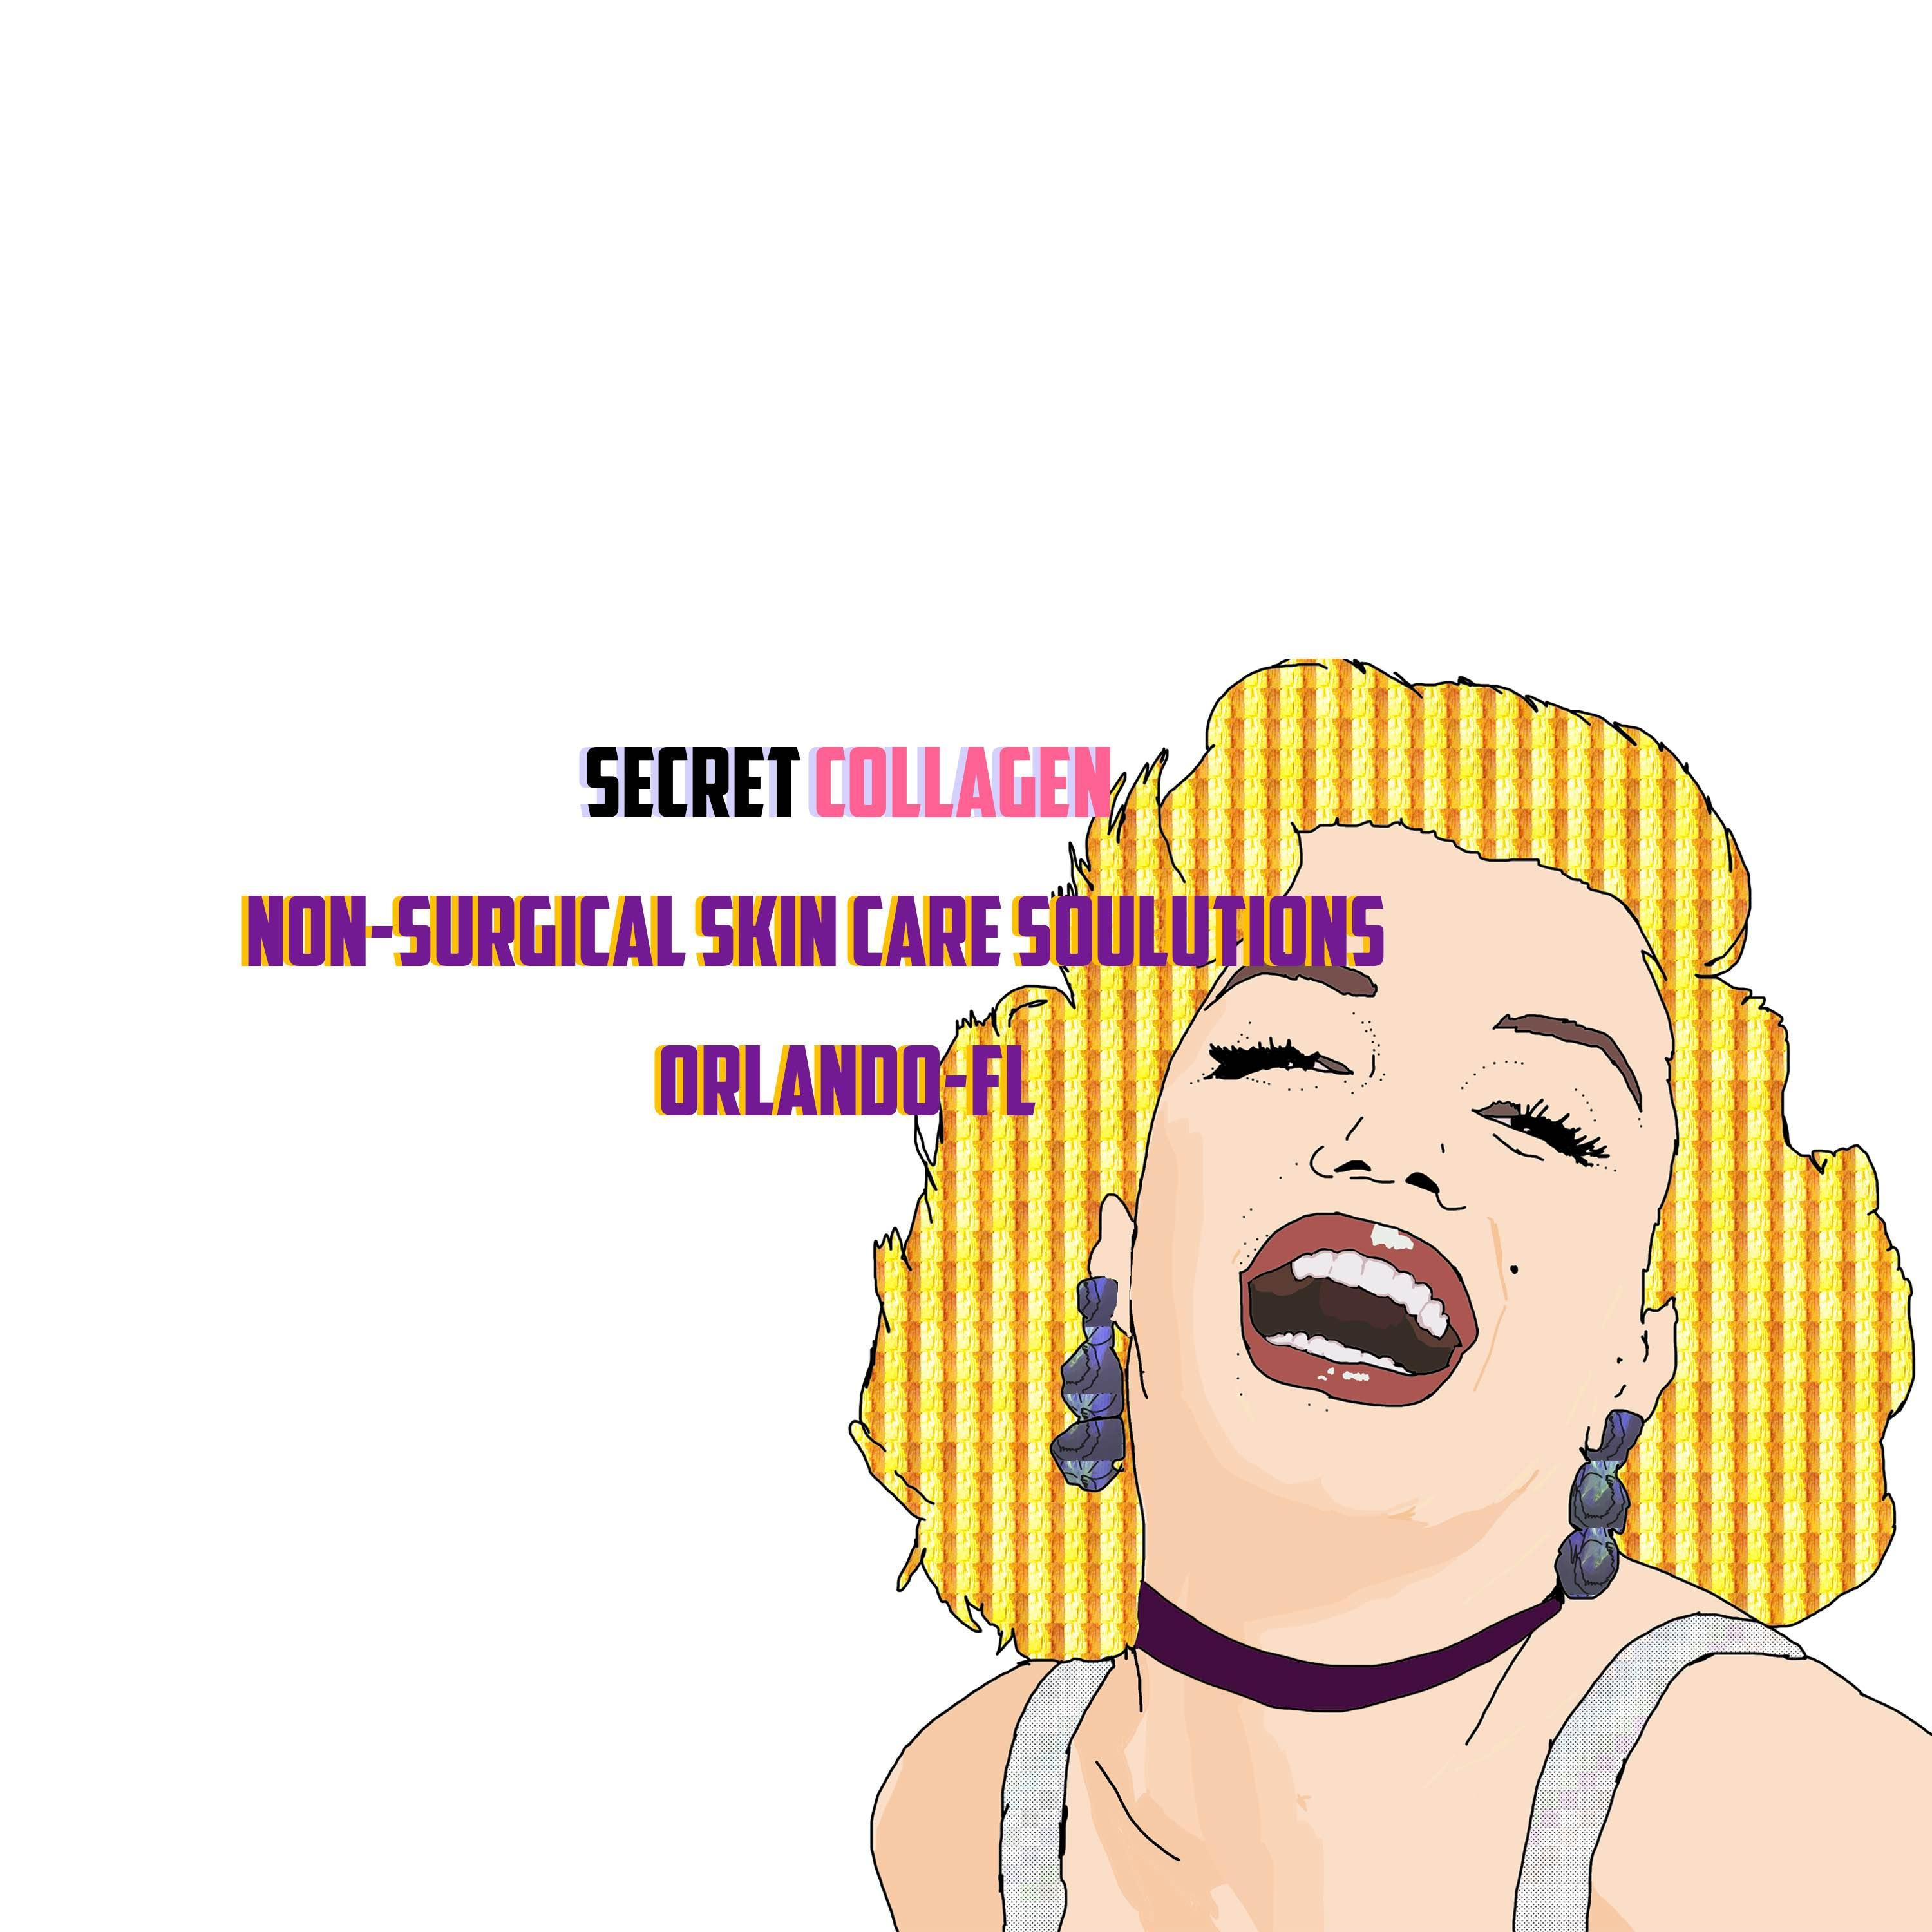 Secret Collagen